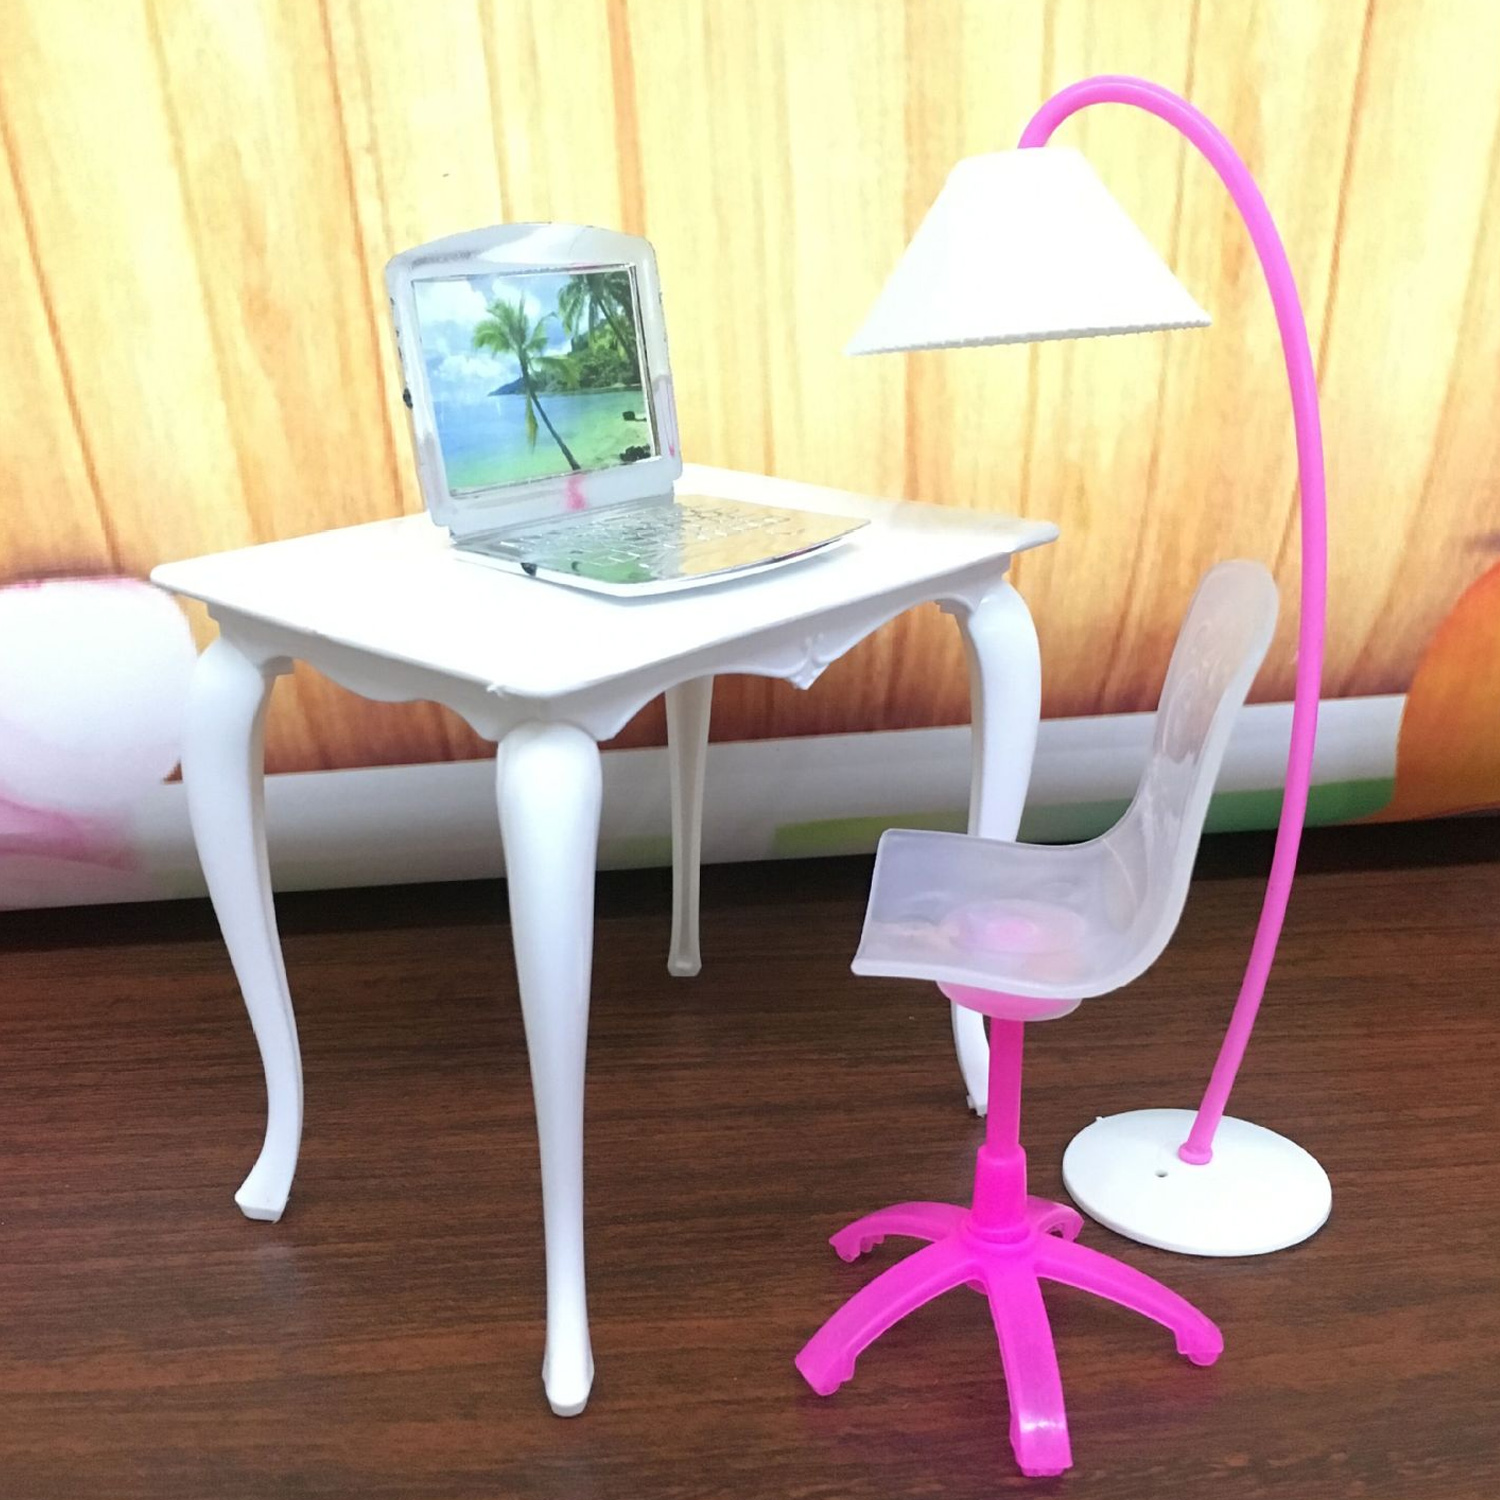 4PCS Simulation Office Table Lamp Laptop Chair Doll House Furniture For Barbie Doll Accessories Children Birthday Christmas Gift